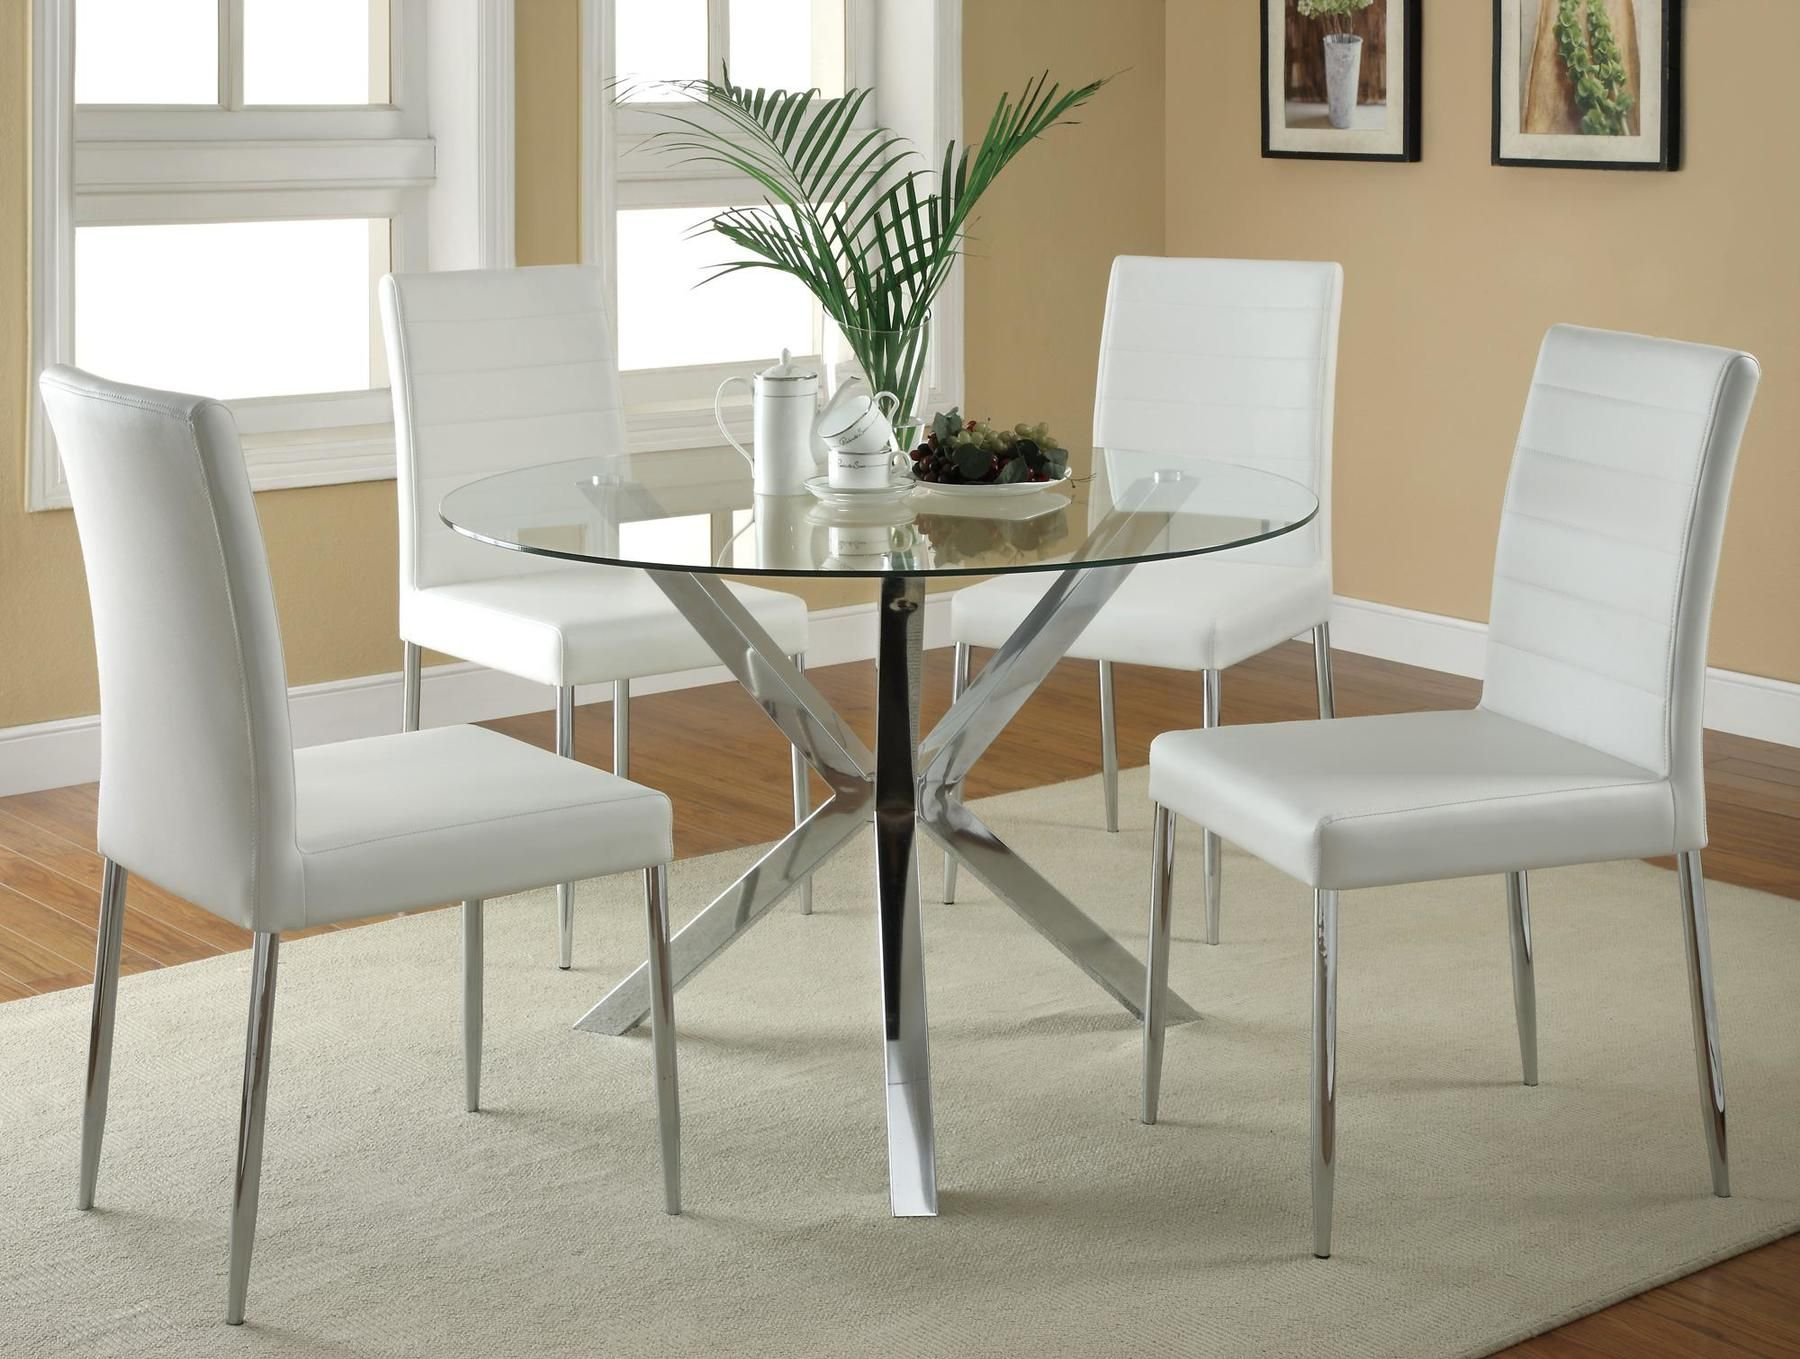 Vance White Table 120760 Coaster Furniture Dining Room Sets In 2021 Glass Round Dining Table Modern Kitchen Tables Dining Room Sets